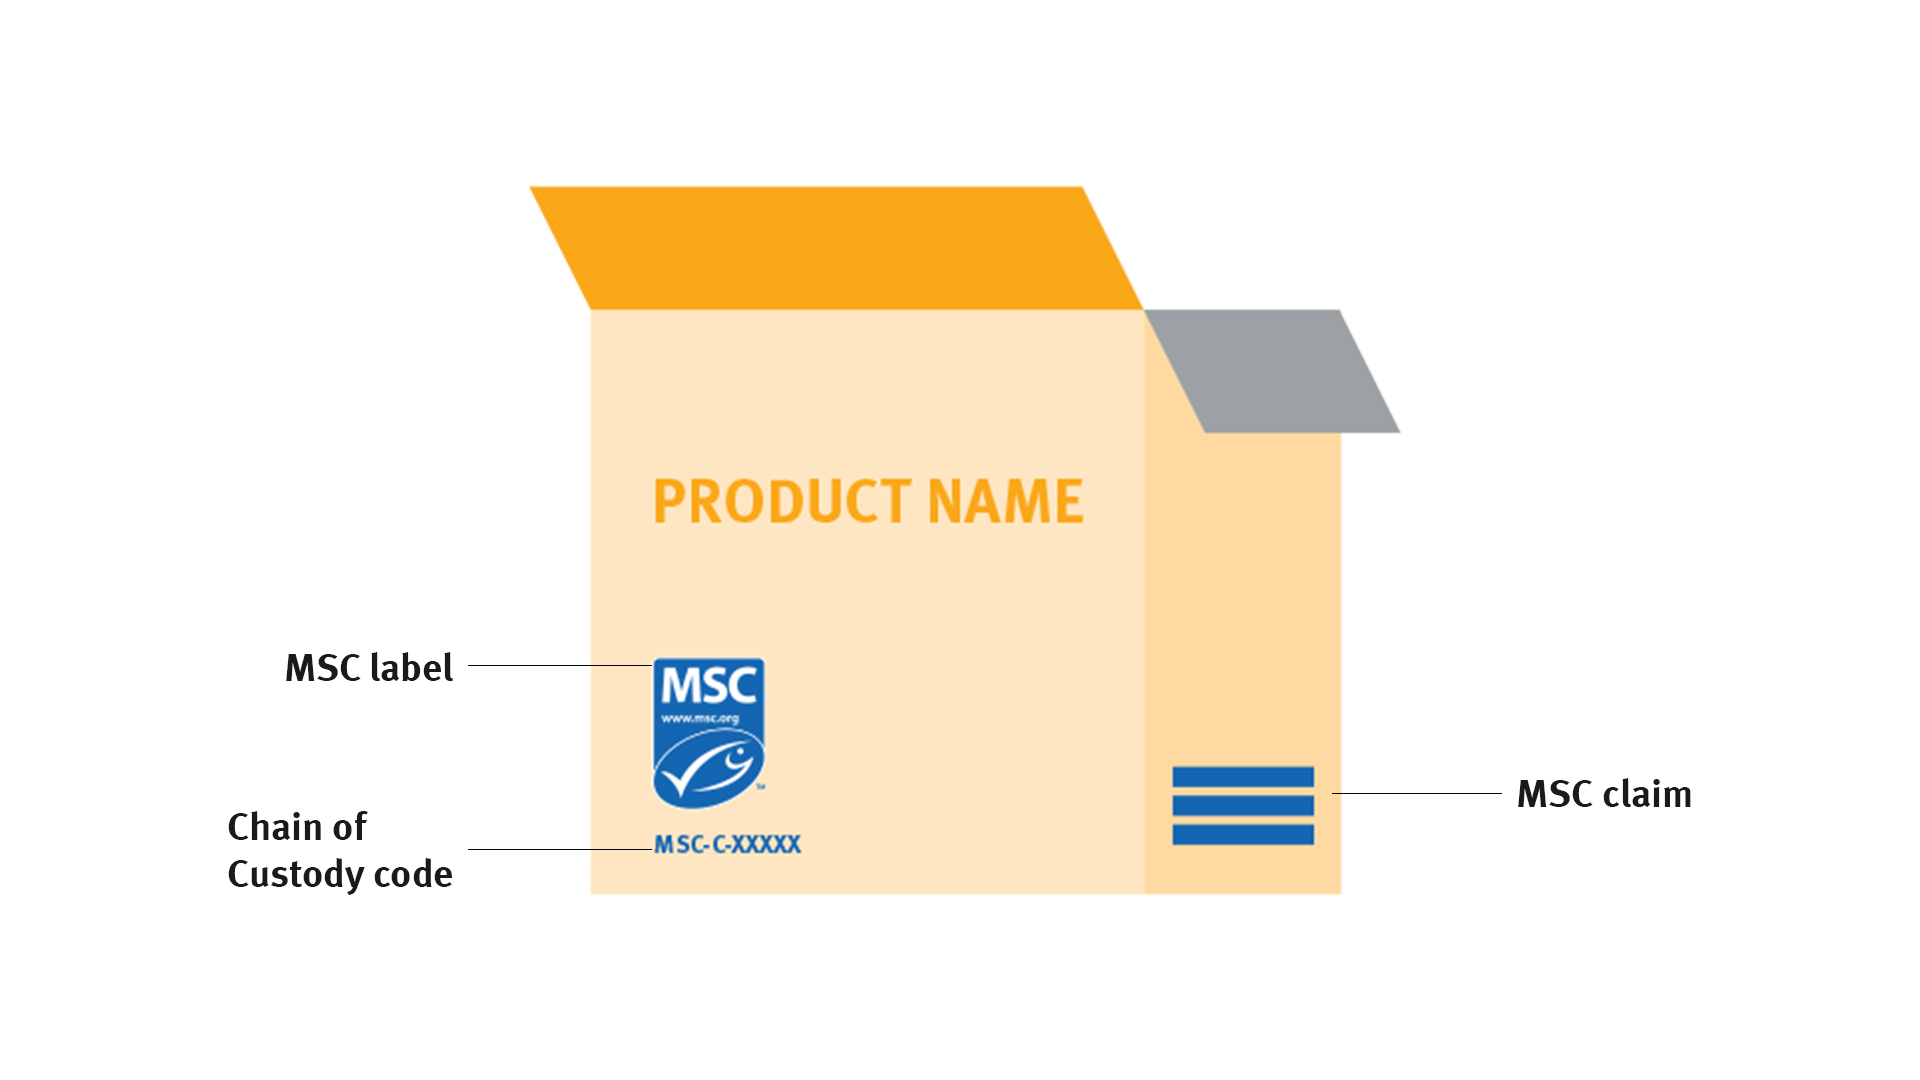 MSC label on product use